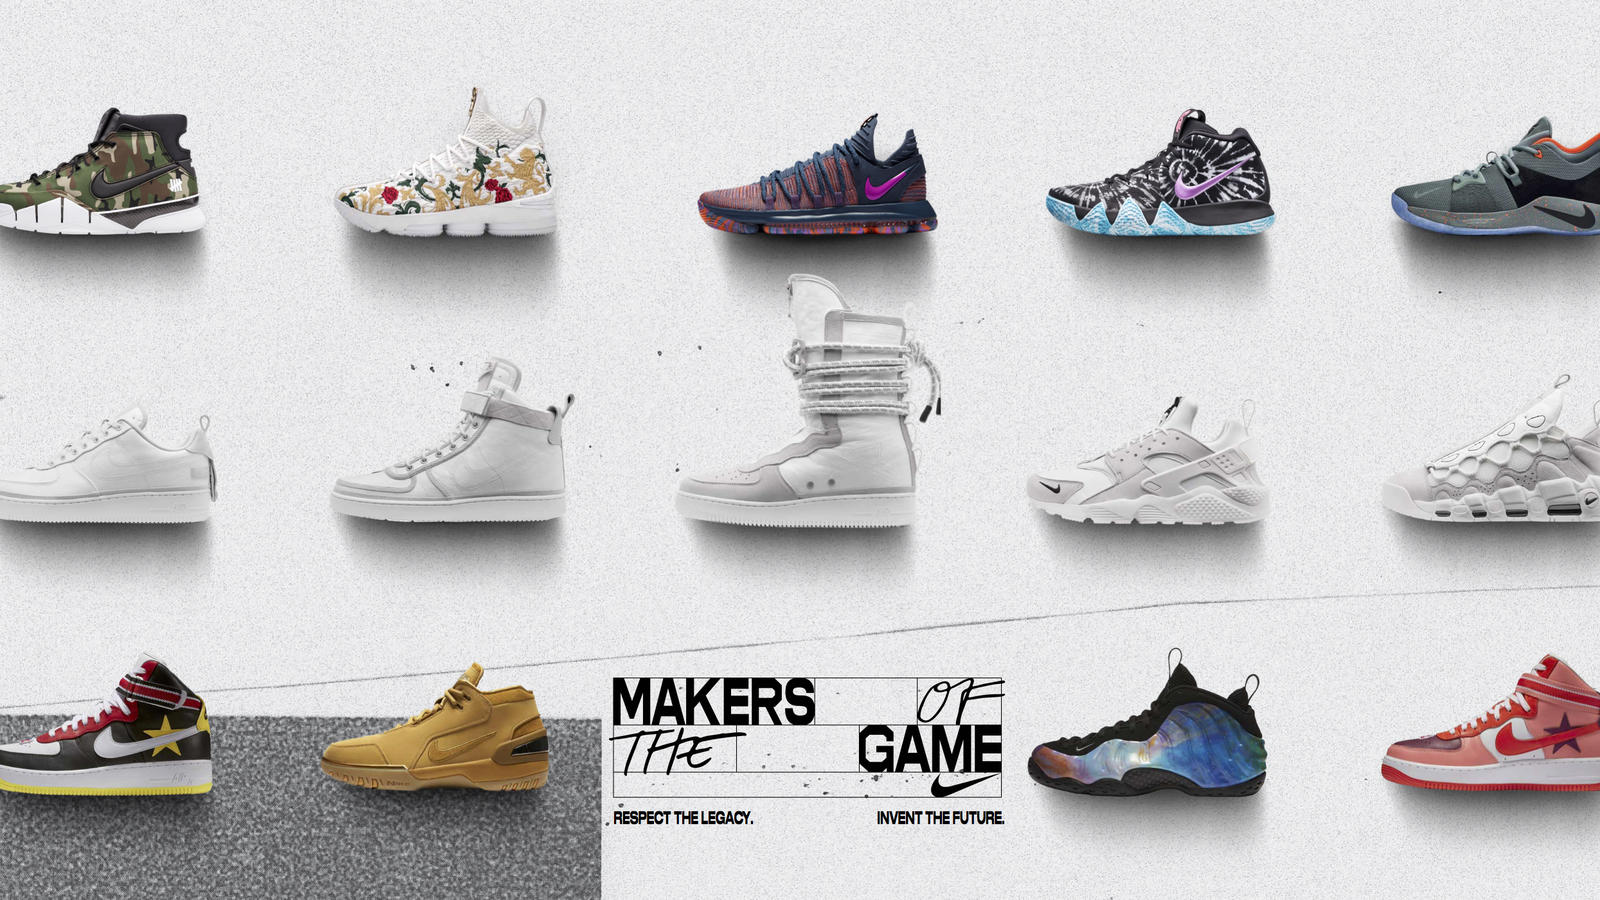 f02c502df4d5 Nike s 2018 NBA All-Star Line Up - Nike News